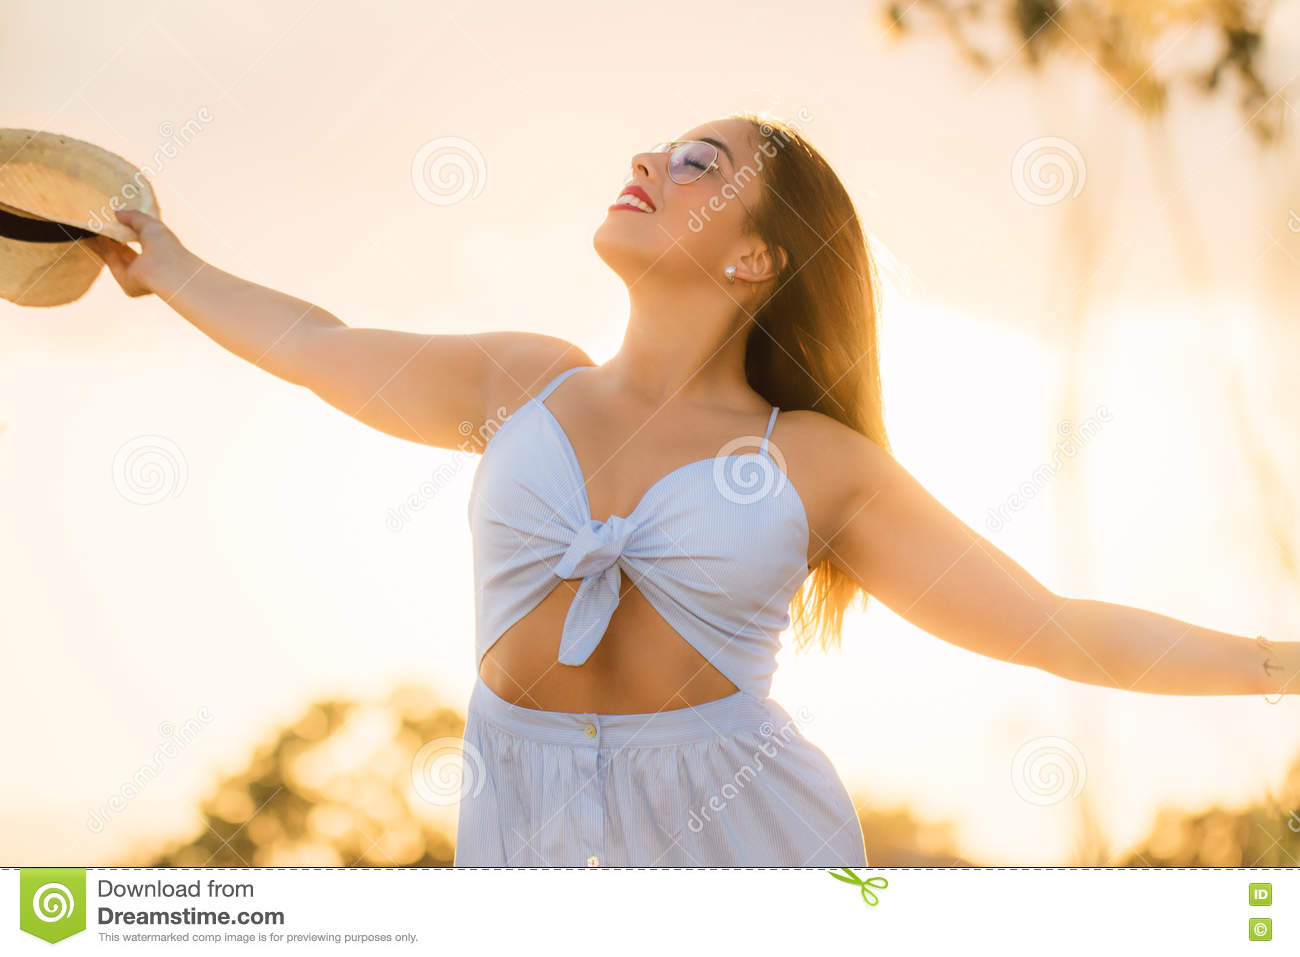 Teen girl with arms open at sunset.